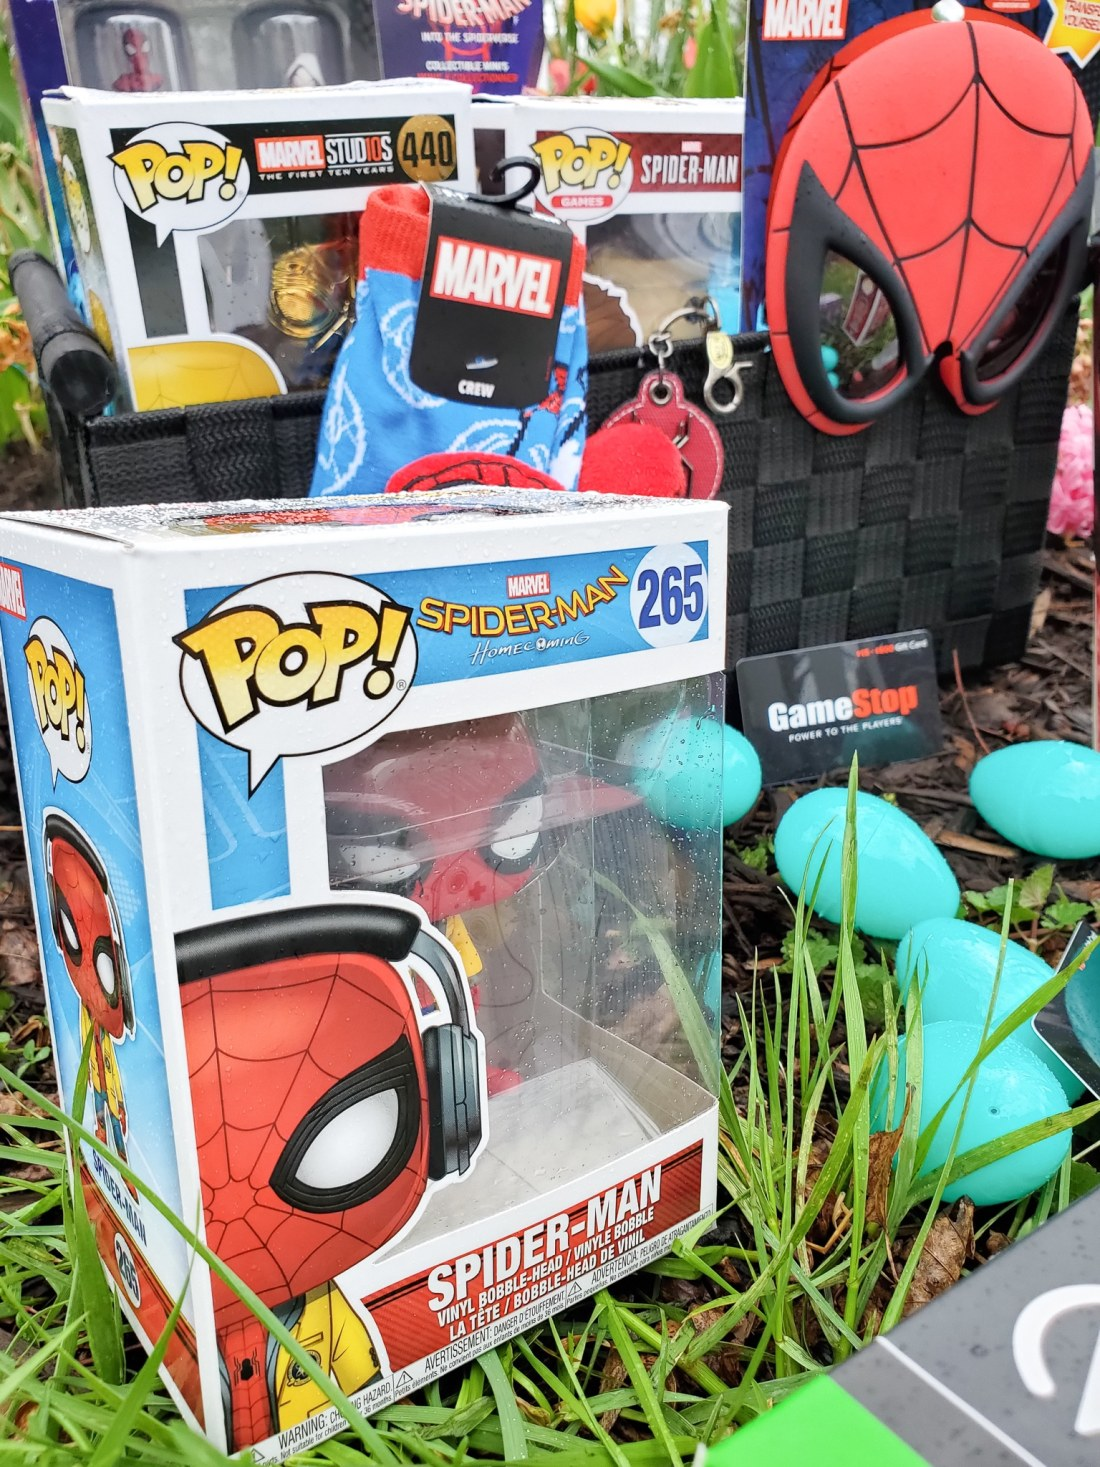 Spider-Man Easter Basket Funk Pops. Build your very own Spider-Man themed Easter Basket with a little help from your One-Stop-Shop GameStop. Gamestop has everything you need to build the ultimate Easter Basket for your teenager.